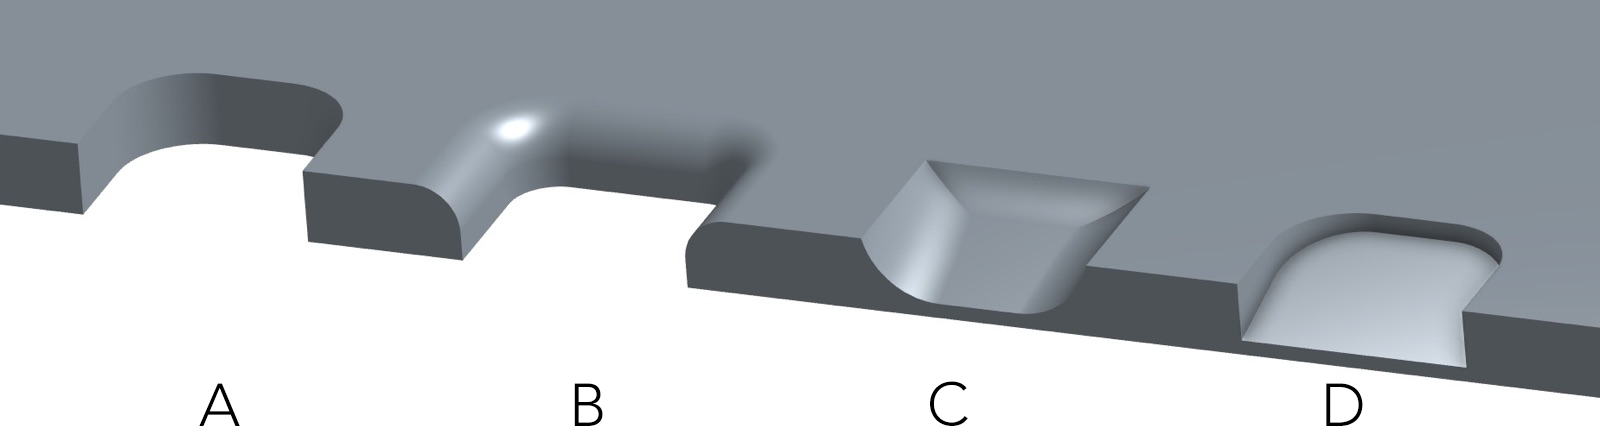 Different designs of the thumb cavity on CoBattery.